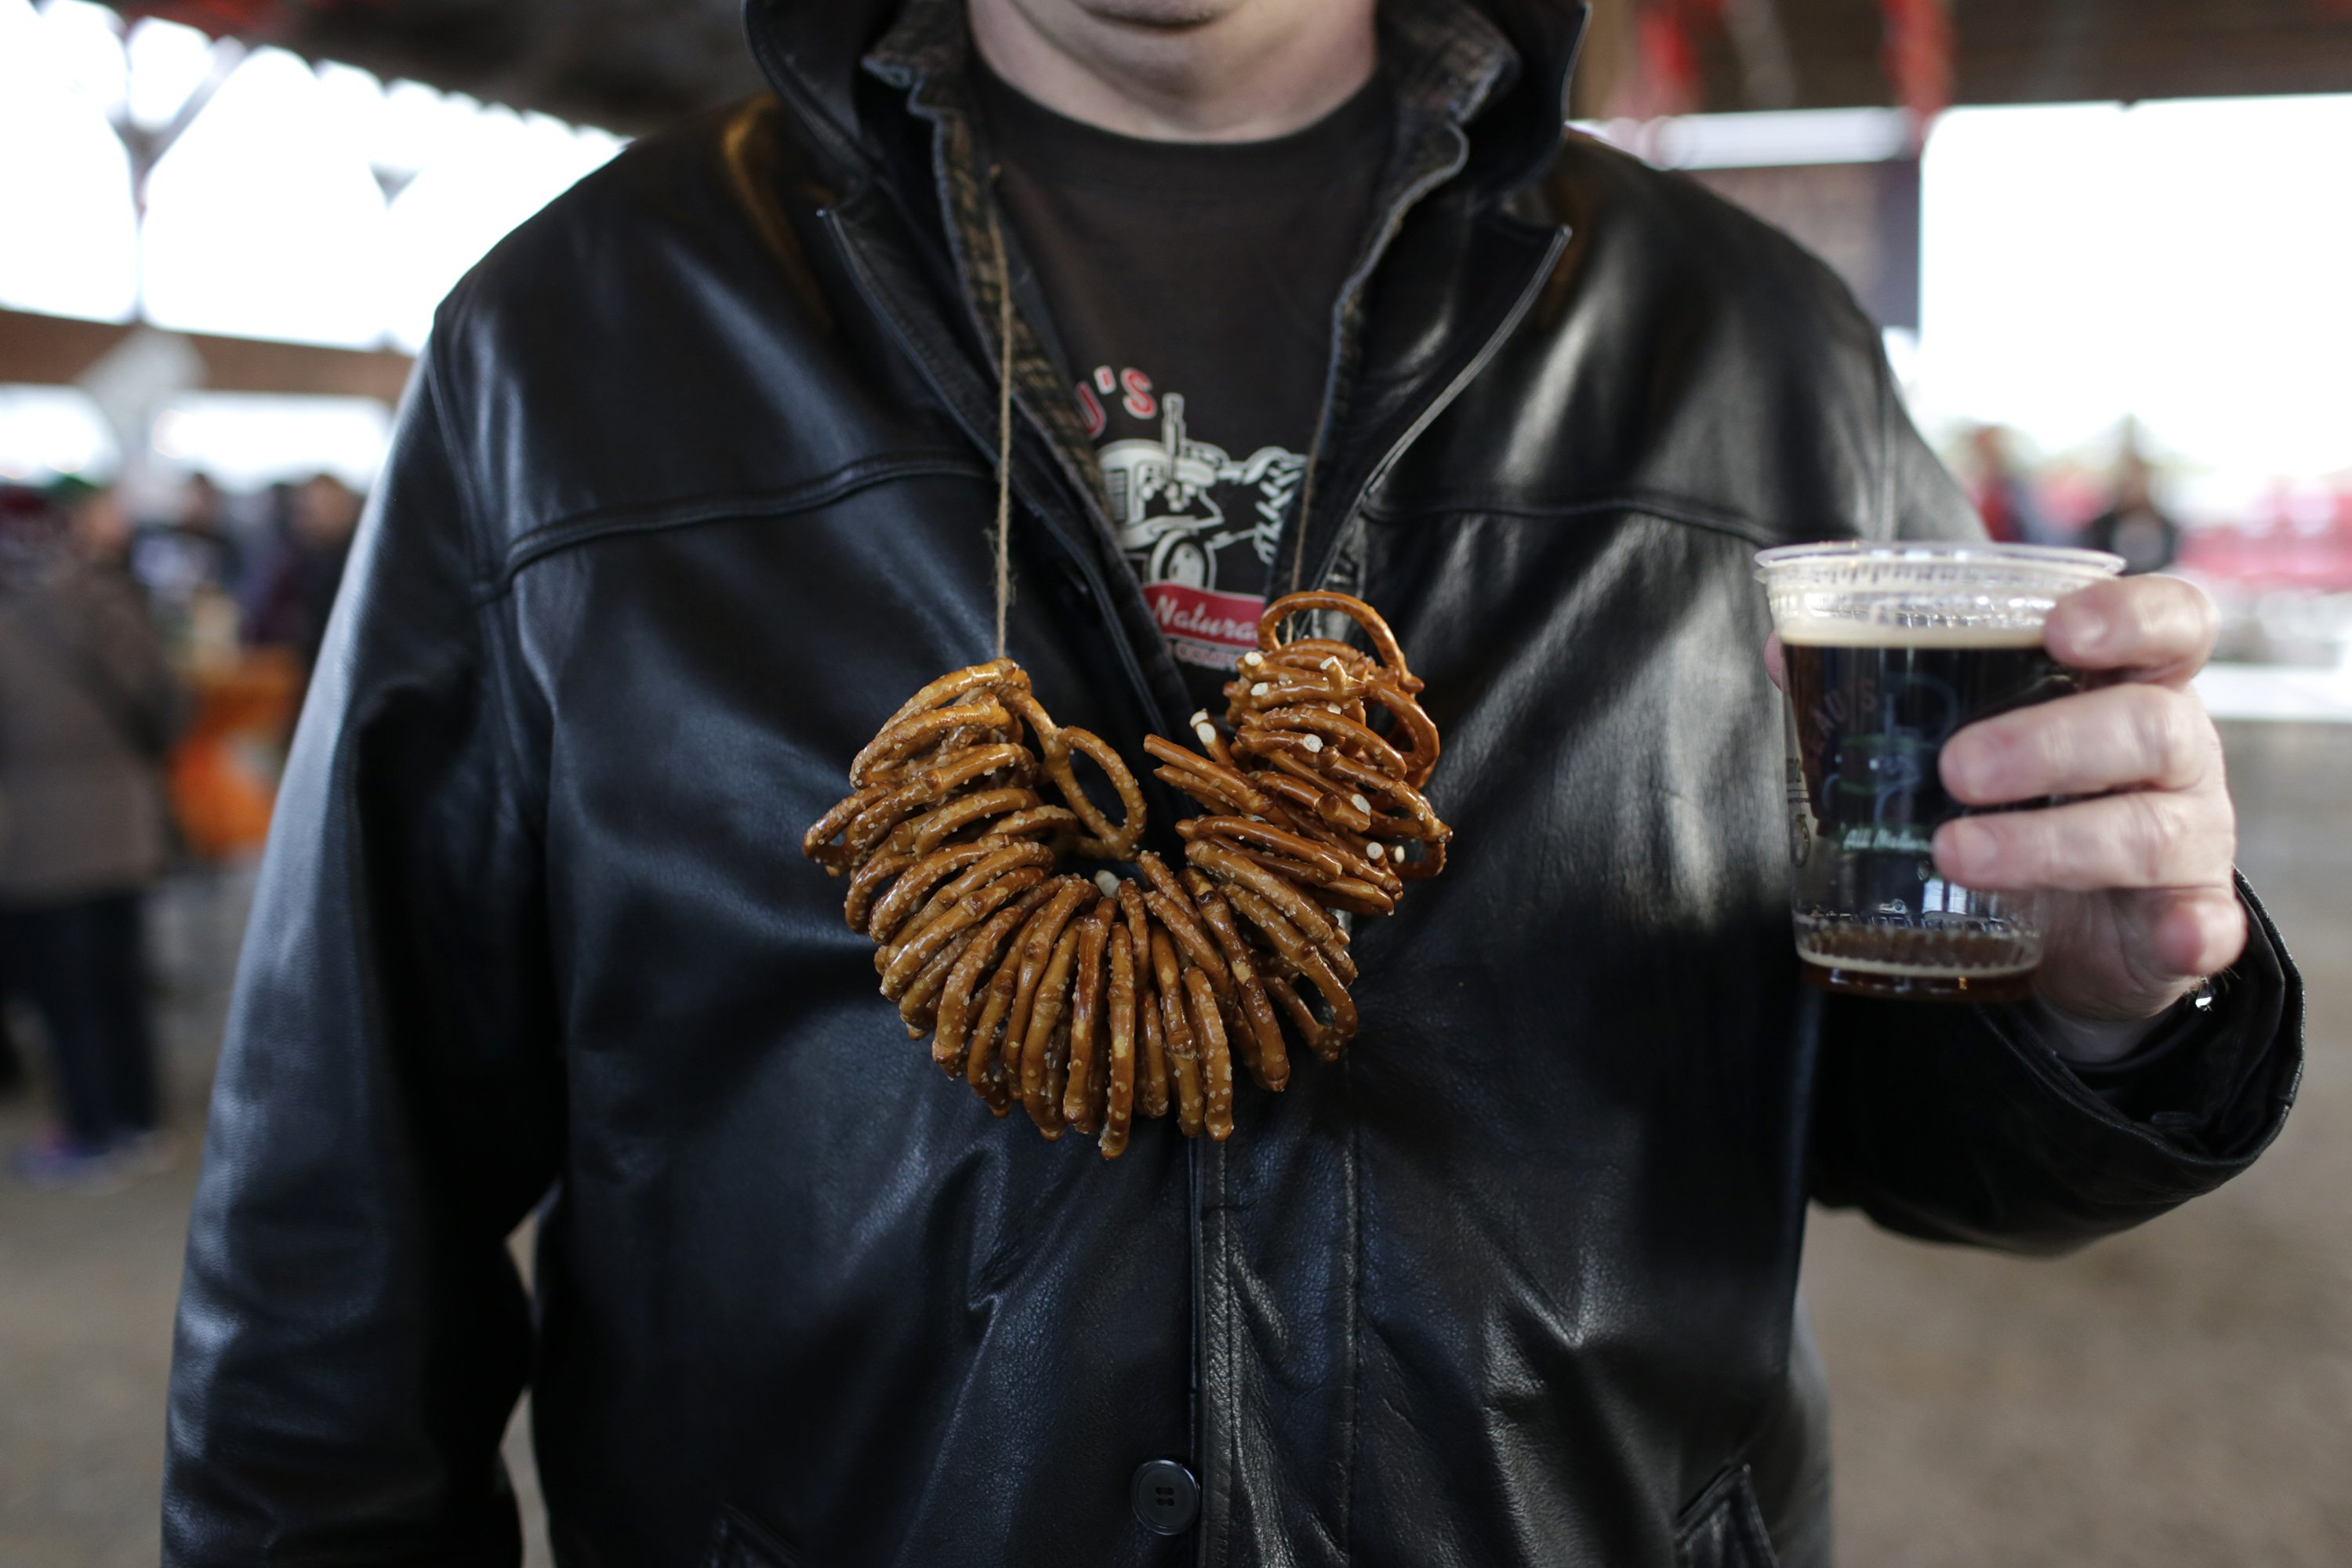 Pretzels on a string at Beau's Oktoberfest in Vankleek Hill, on Friday, Oct. 2, 2015. Photo by David Kawai for Ottawa Magazine